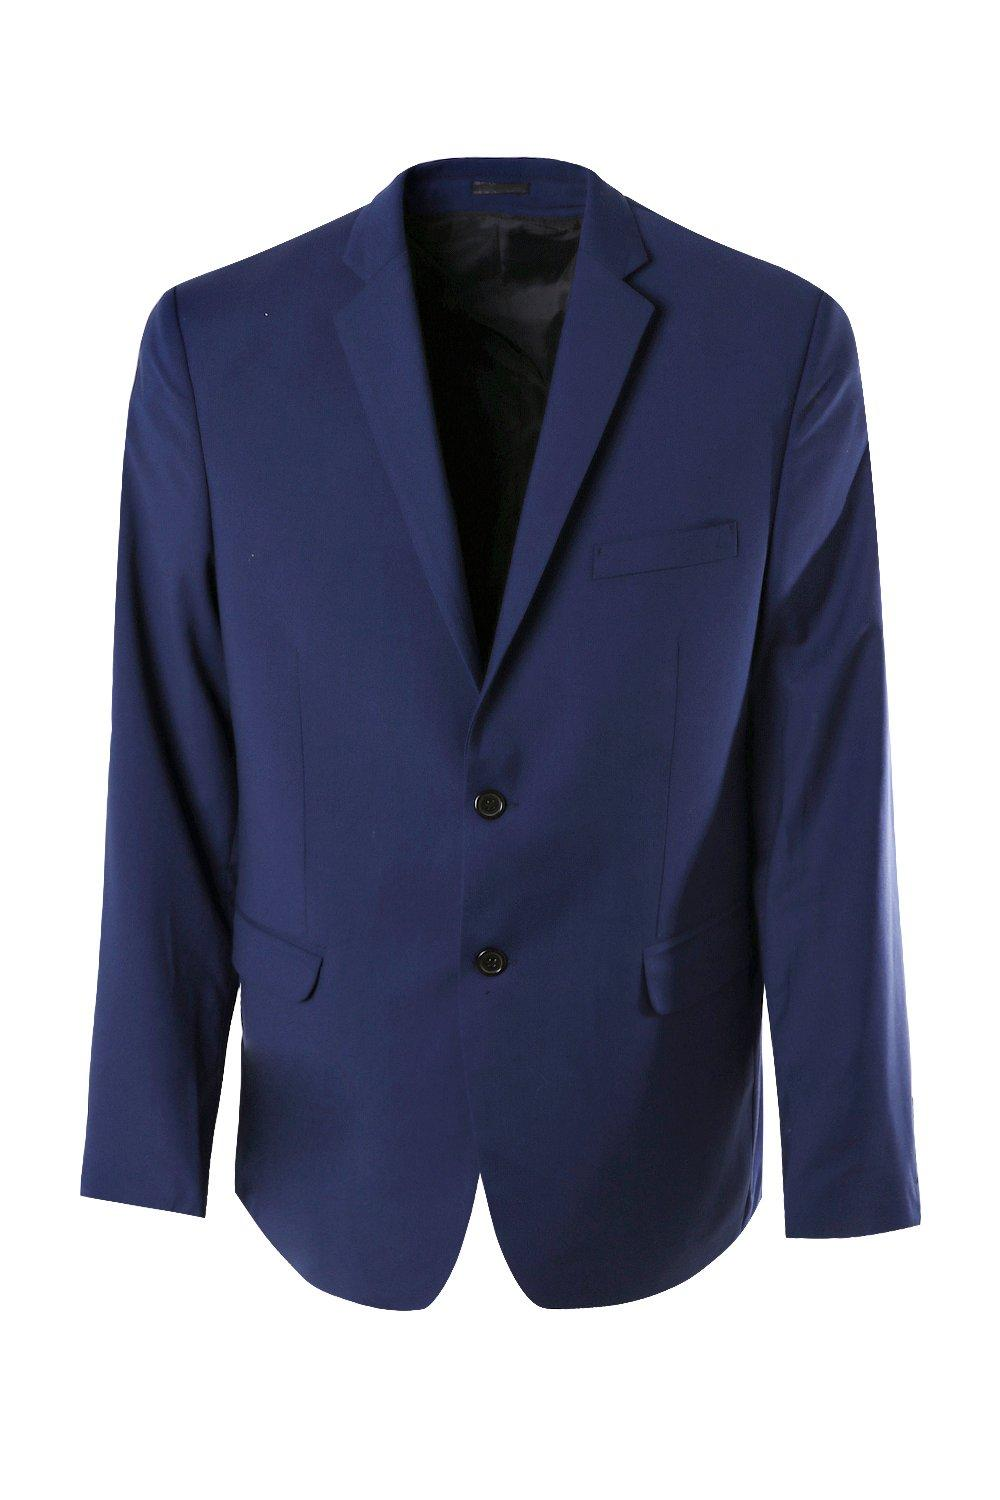 boohooMAN blue Big And Tall Skinny Fit Suit Jacket